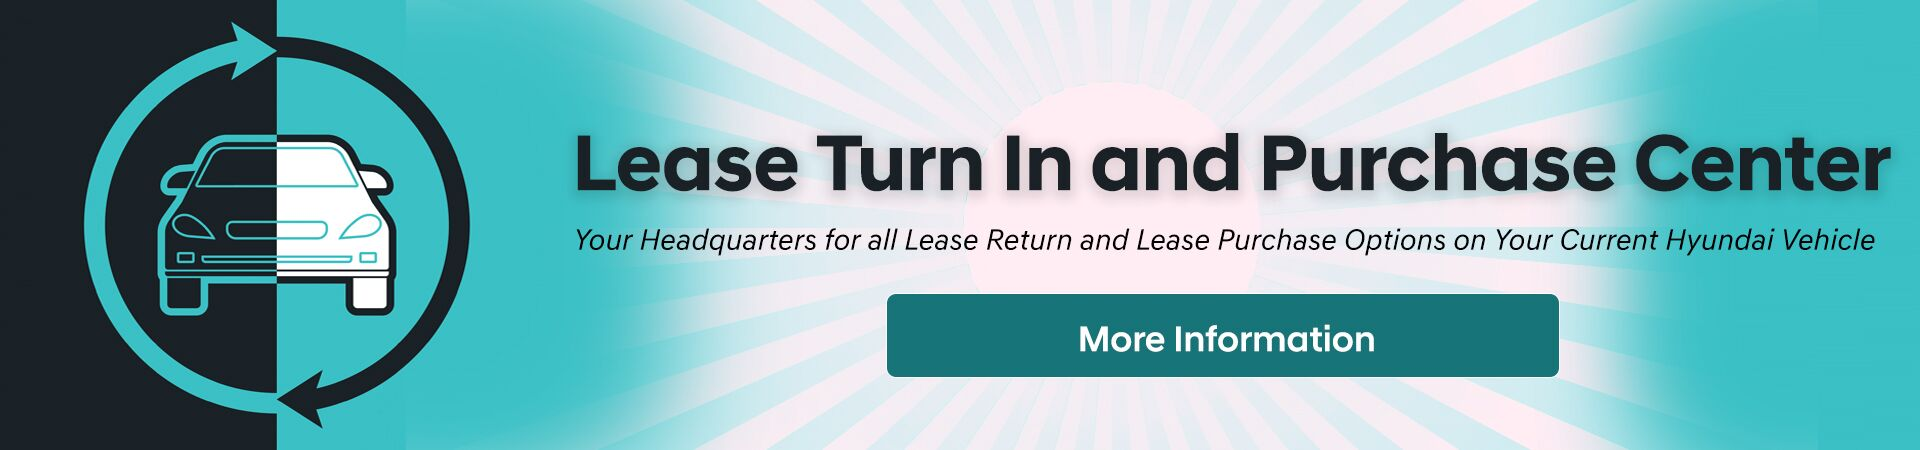 Lease Turn in and Purchase Center